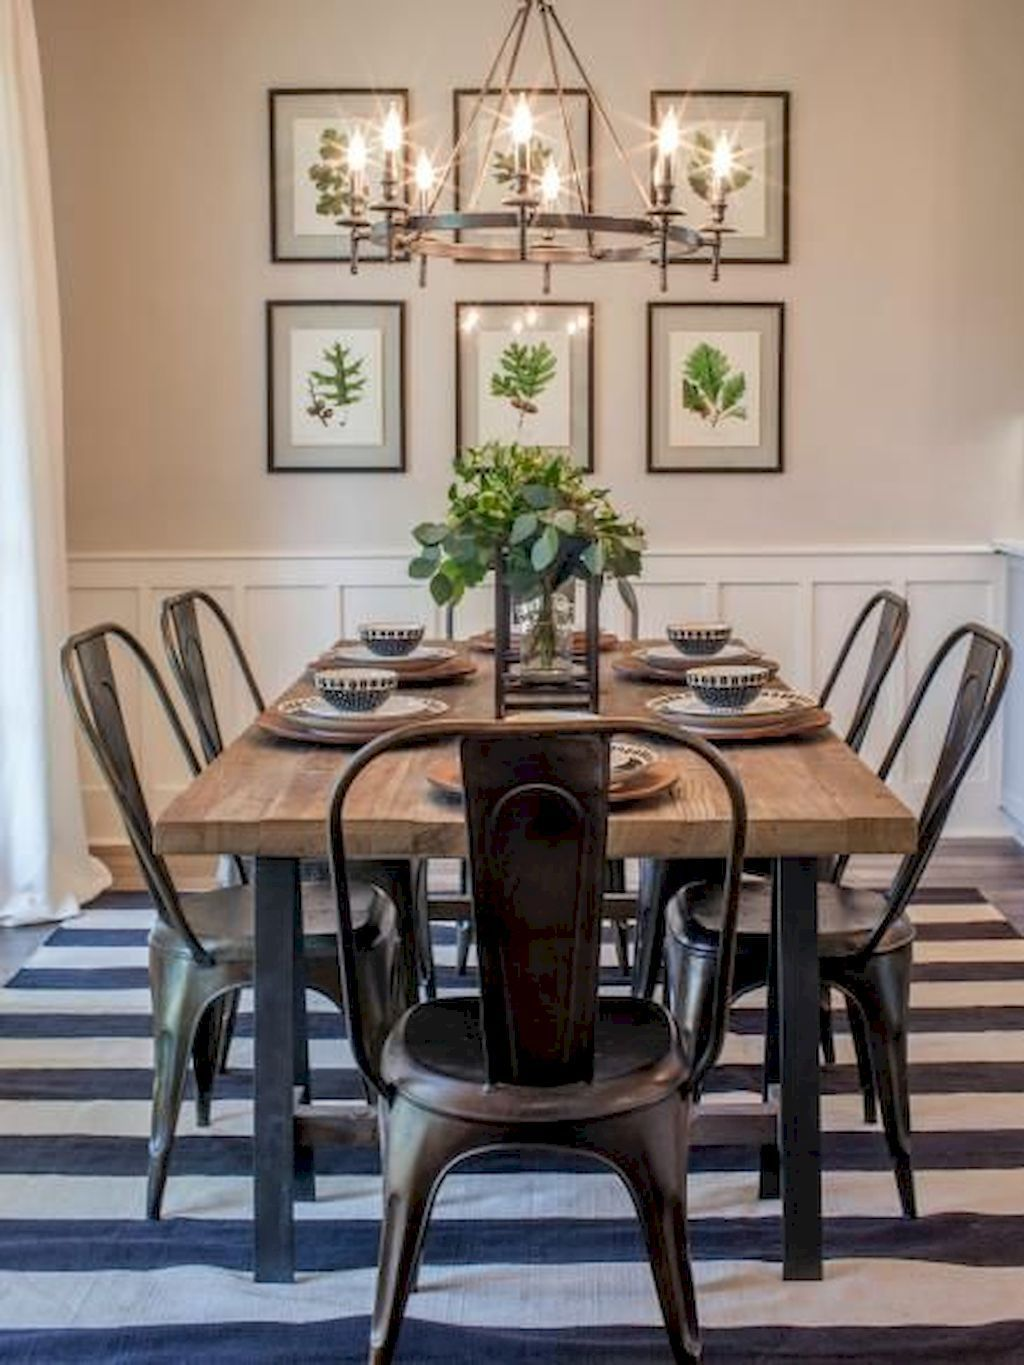 Rustic Farmhouse Dining Room Table Ideas 15 Metal Kitchen Chairs